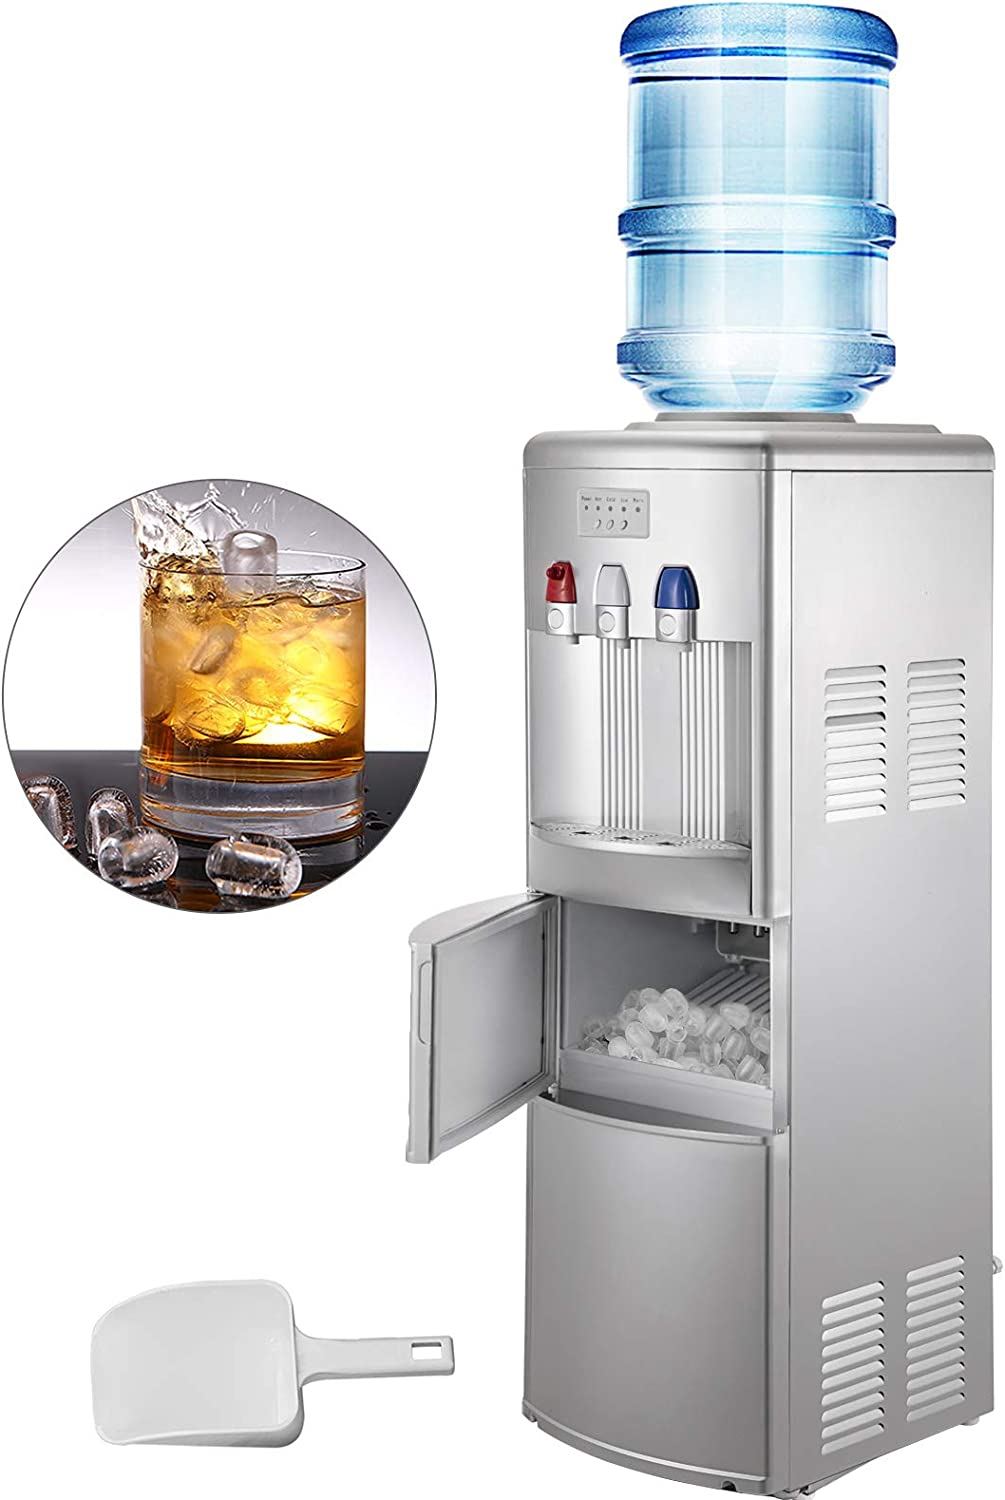 VBENLEM 2 in 1Water Cooler Dispenser with Built in Ice Maker Machine Silver Hot and Cold Top Loading 3 to 5 Gallon Bottle Electric Hot Cold Water Cooler Dispenser Machine with Ice Scoop